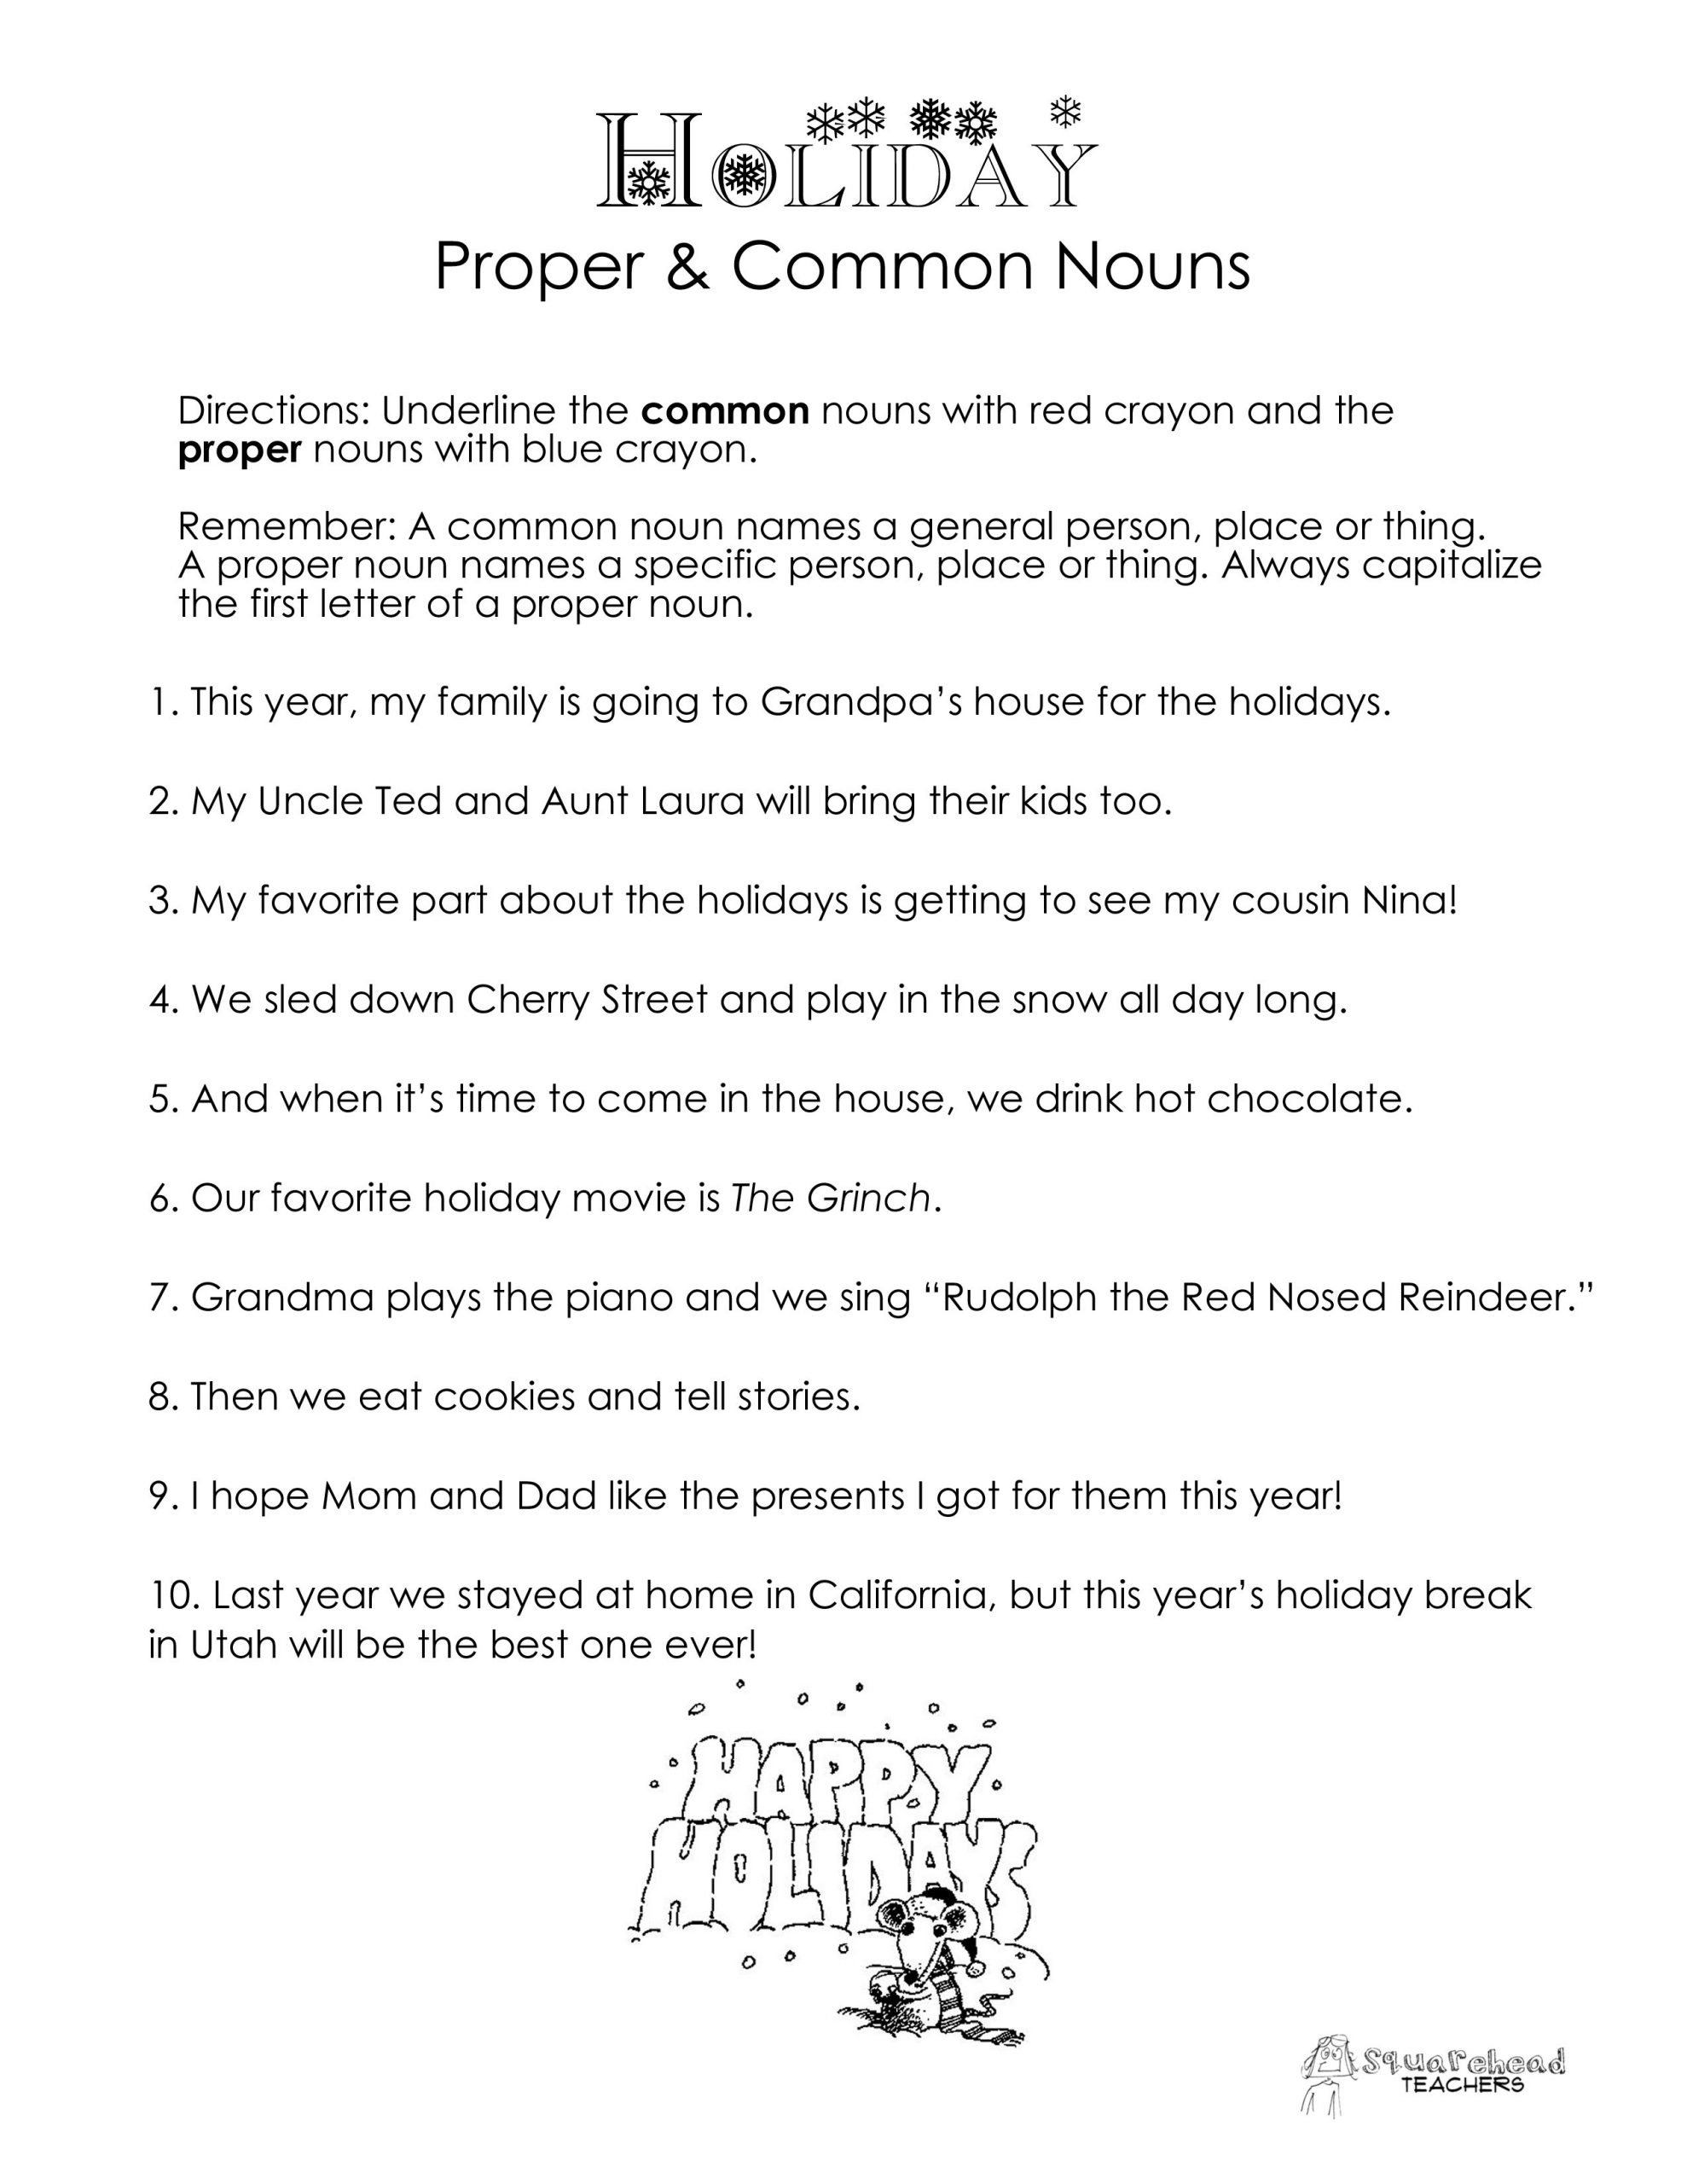 holiday mon nouns vs proper nouns worksheet